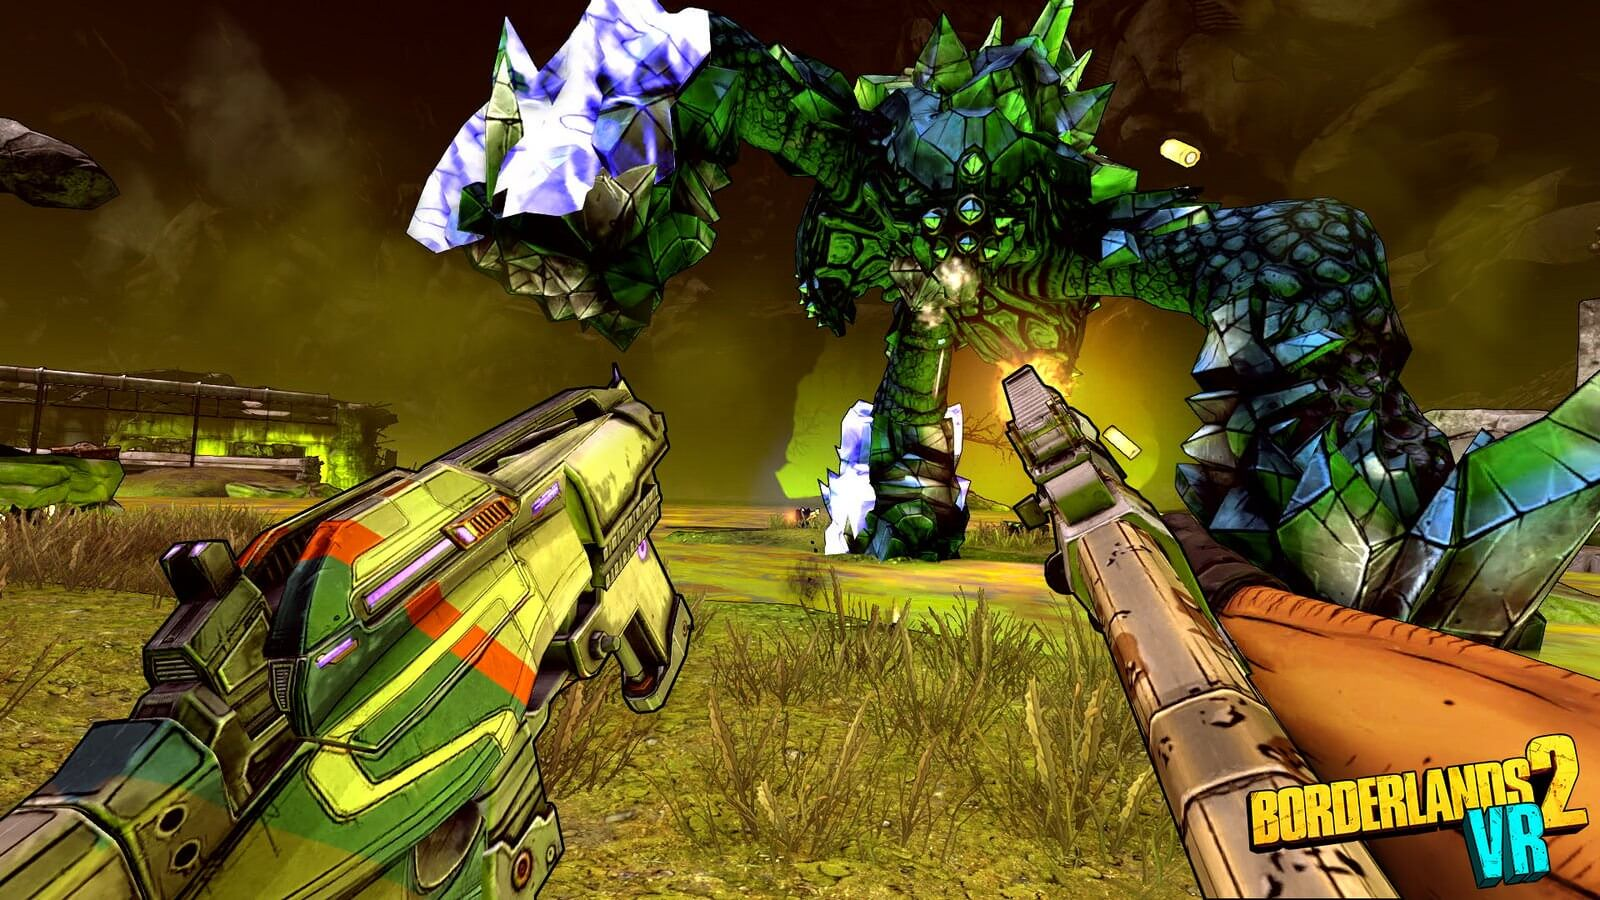 Gearbox announces Borderlands 2 VR out this year - TechSpot